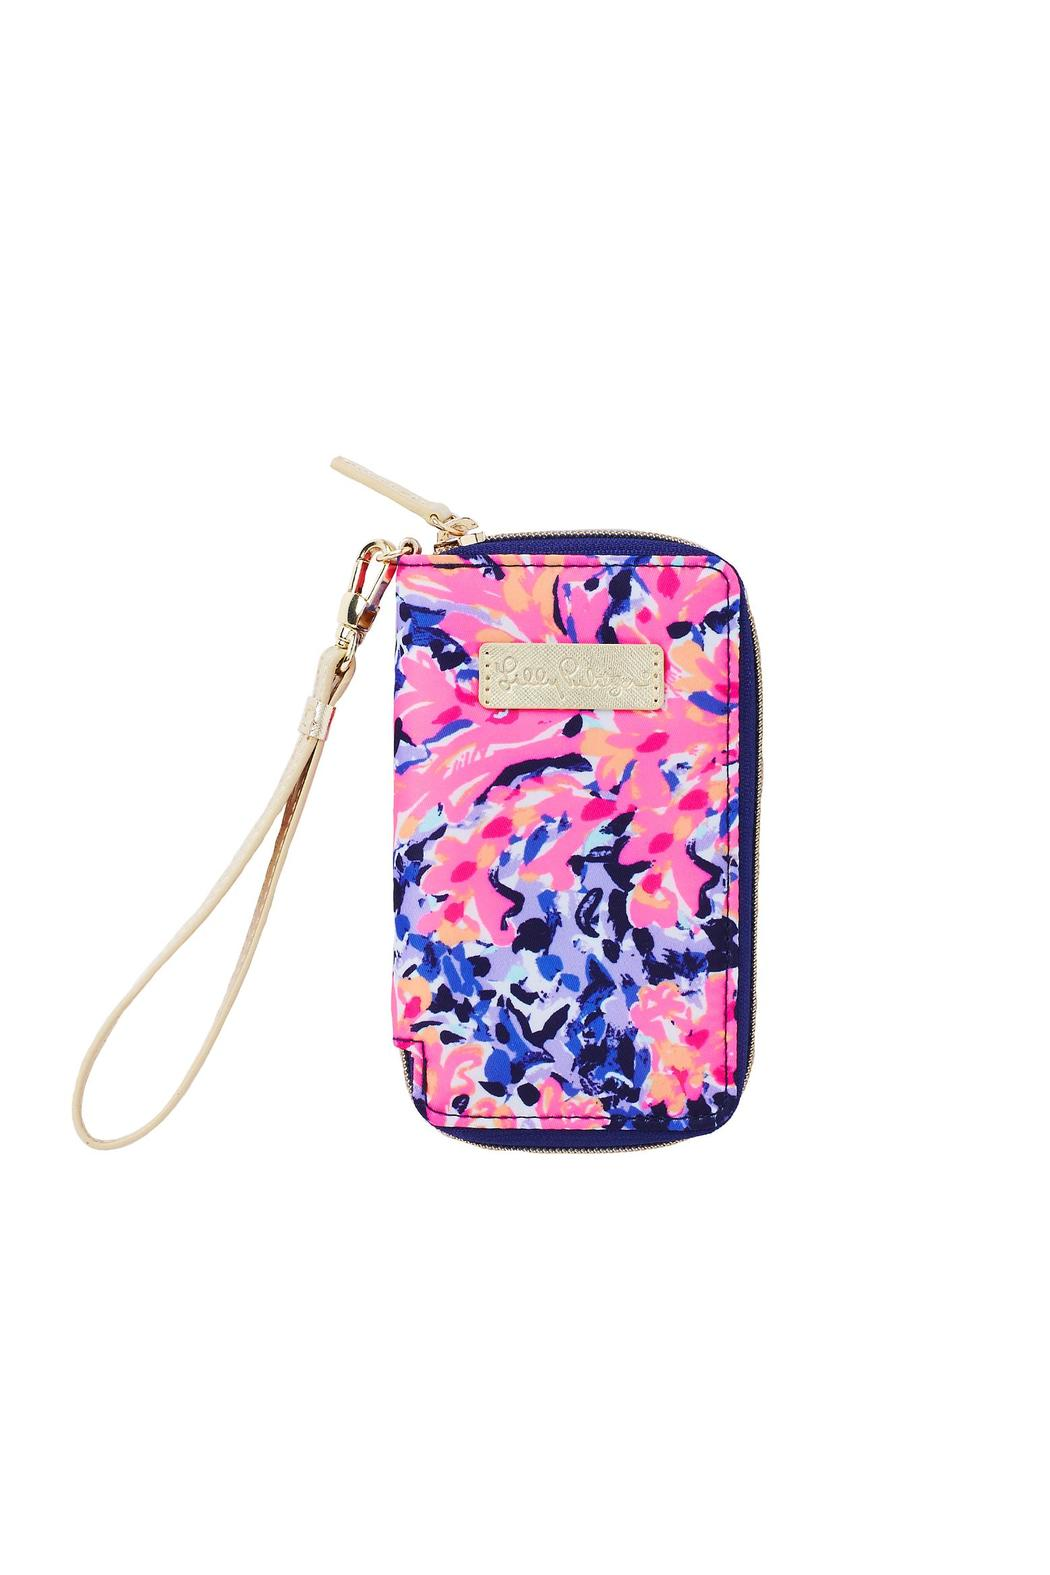 Lilly Pulitzer Phone Wristlet | Lilly Pulitzer Phone Case | Vera Bradley Macbook Case